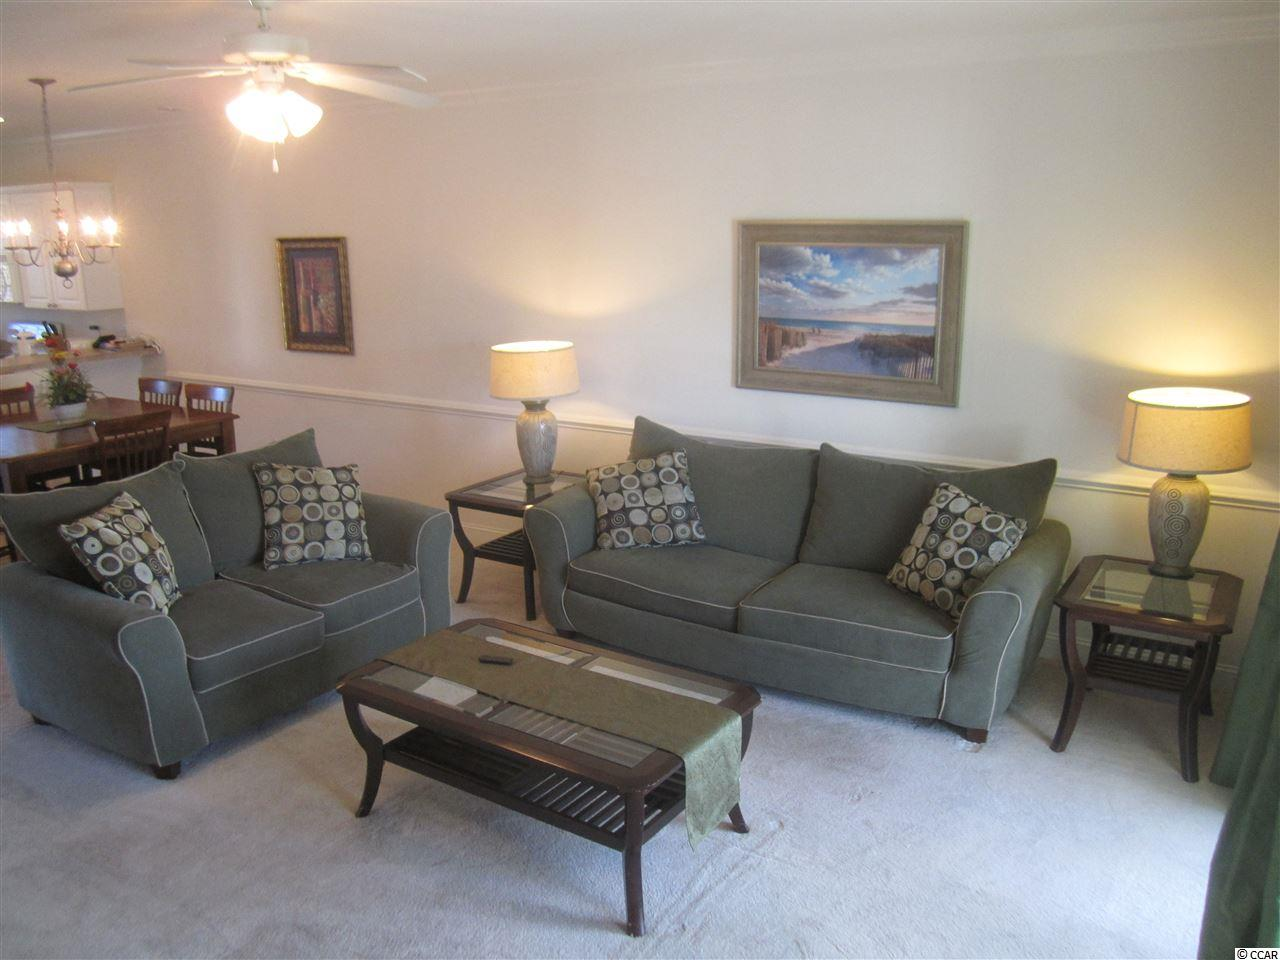 MAGNOLIA POINTE condo at 4829 LUSTER LEAF CIRCLE 202 for sale. 1702371